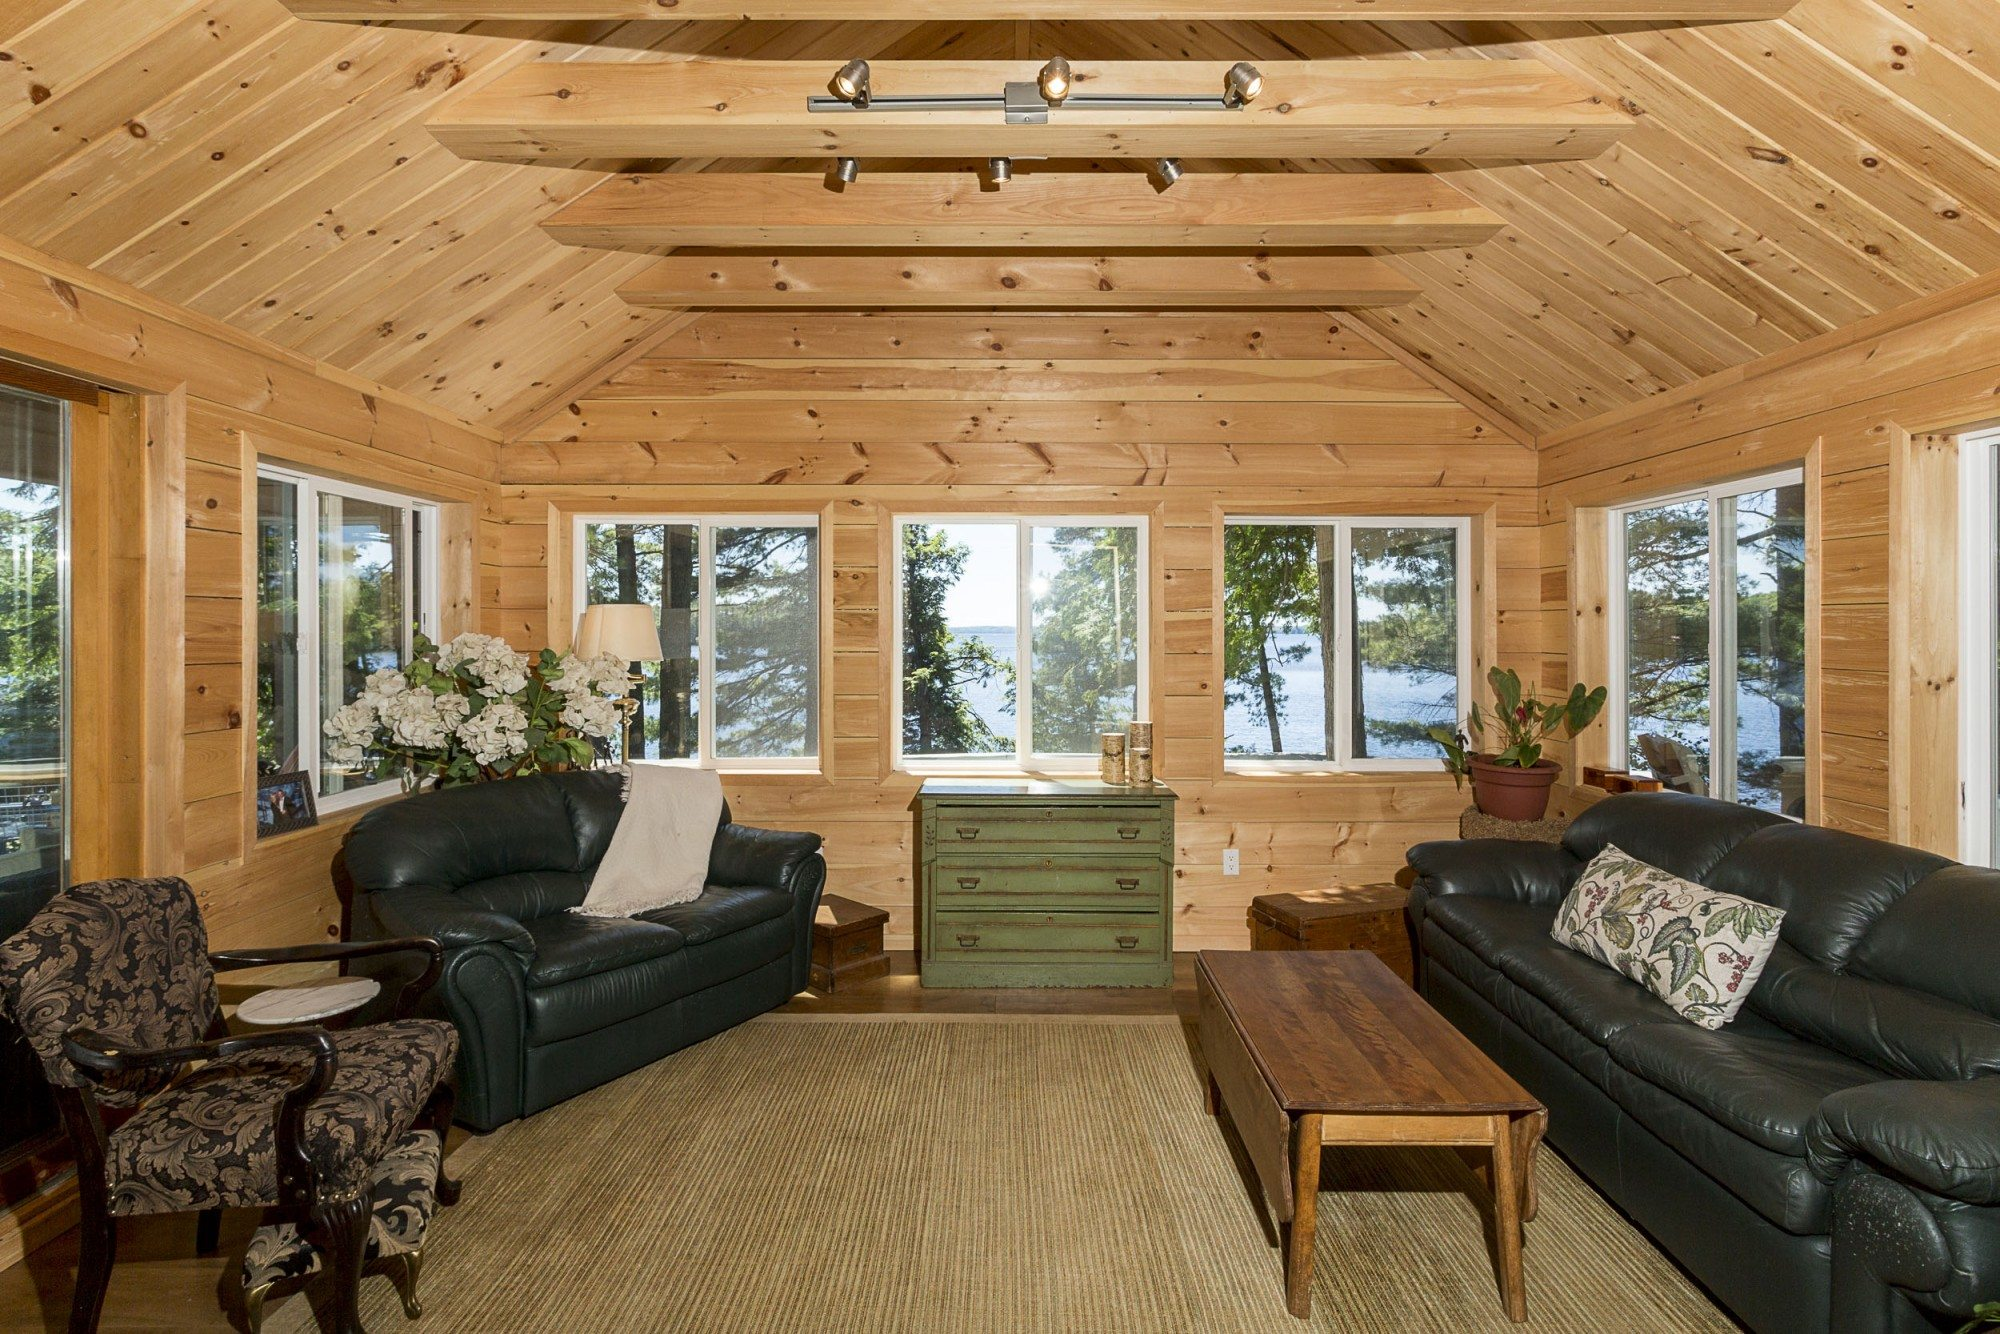 lake-of-bays-cottage-of-the-week-1057-montgomery-bay-road.5